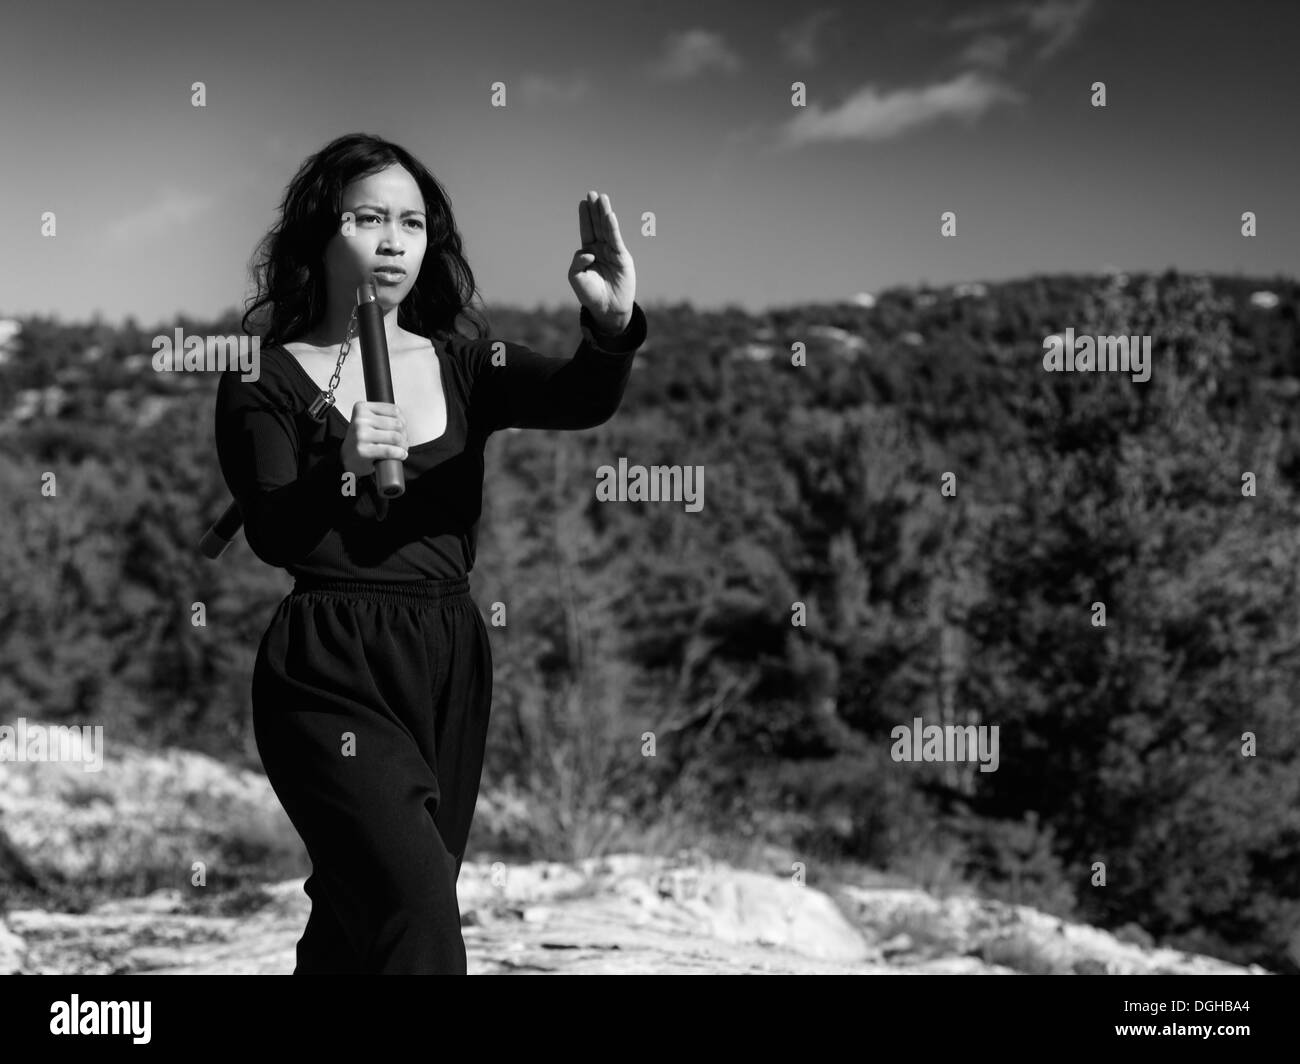 Dramatic black and white portrait of a young asian woman martial artis practicing nunchaku in the nature. Ontario, Stock Photo